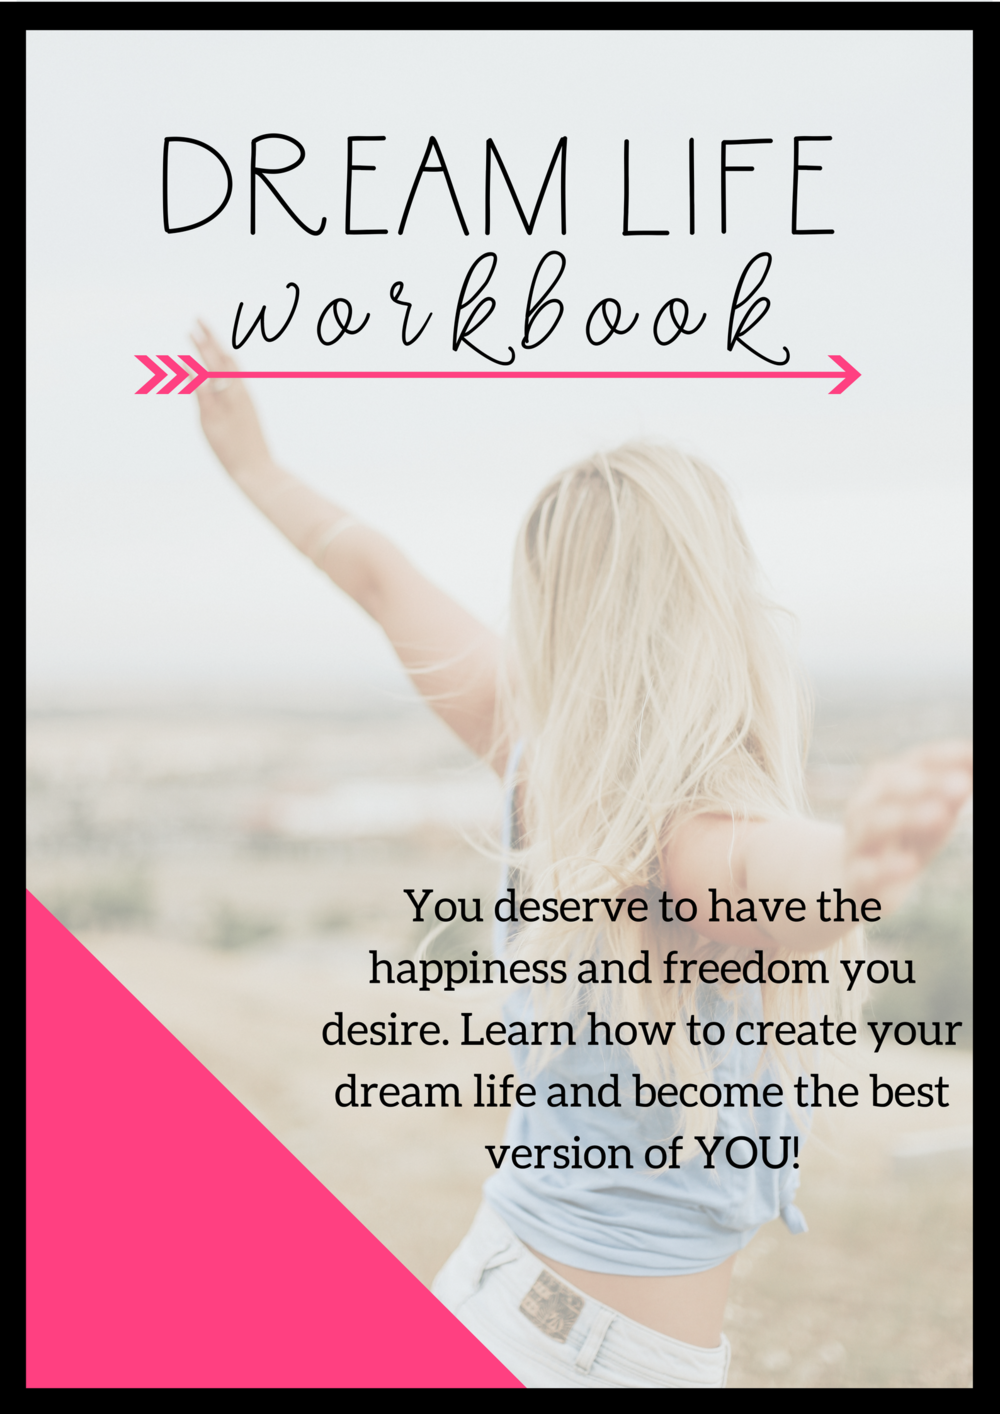 This workbook will help you design the live you really want. when you're clear on what you want, you can take inspired action to make it a reality.